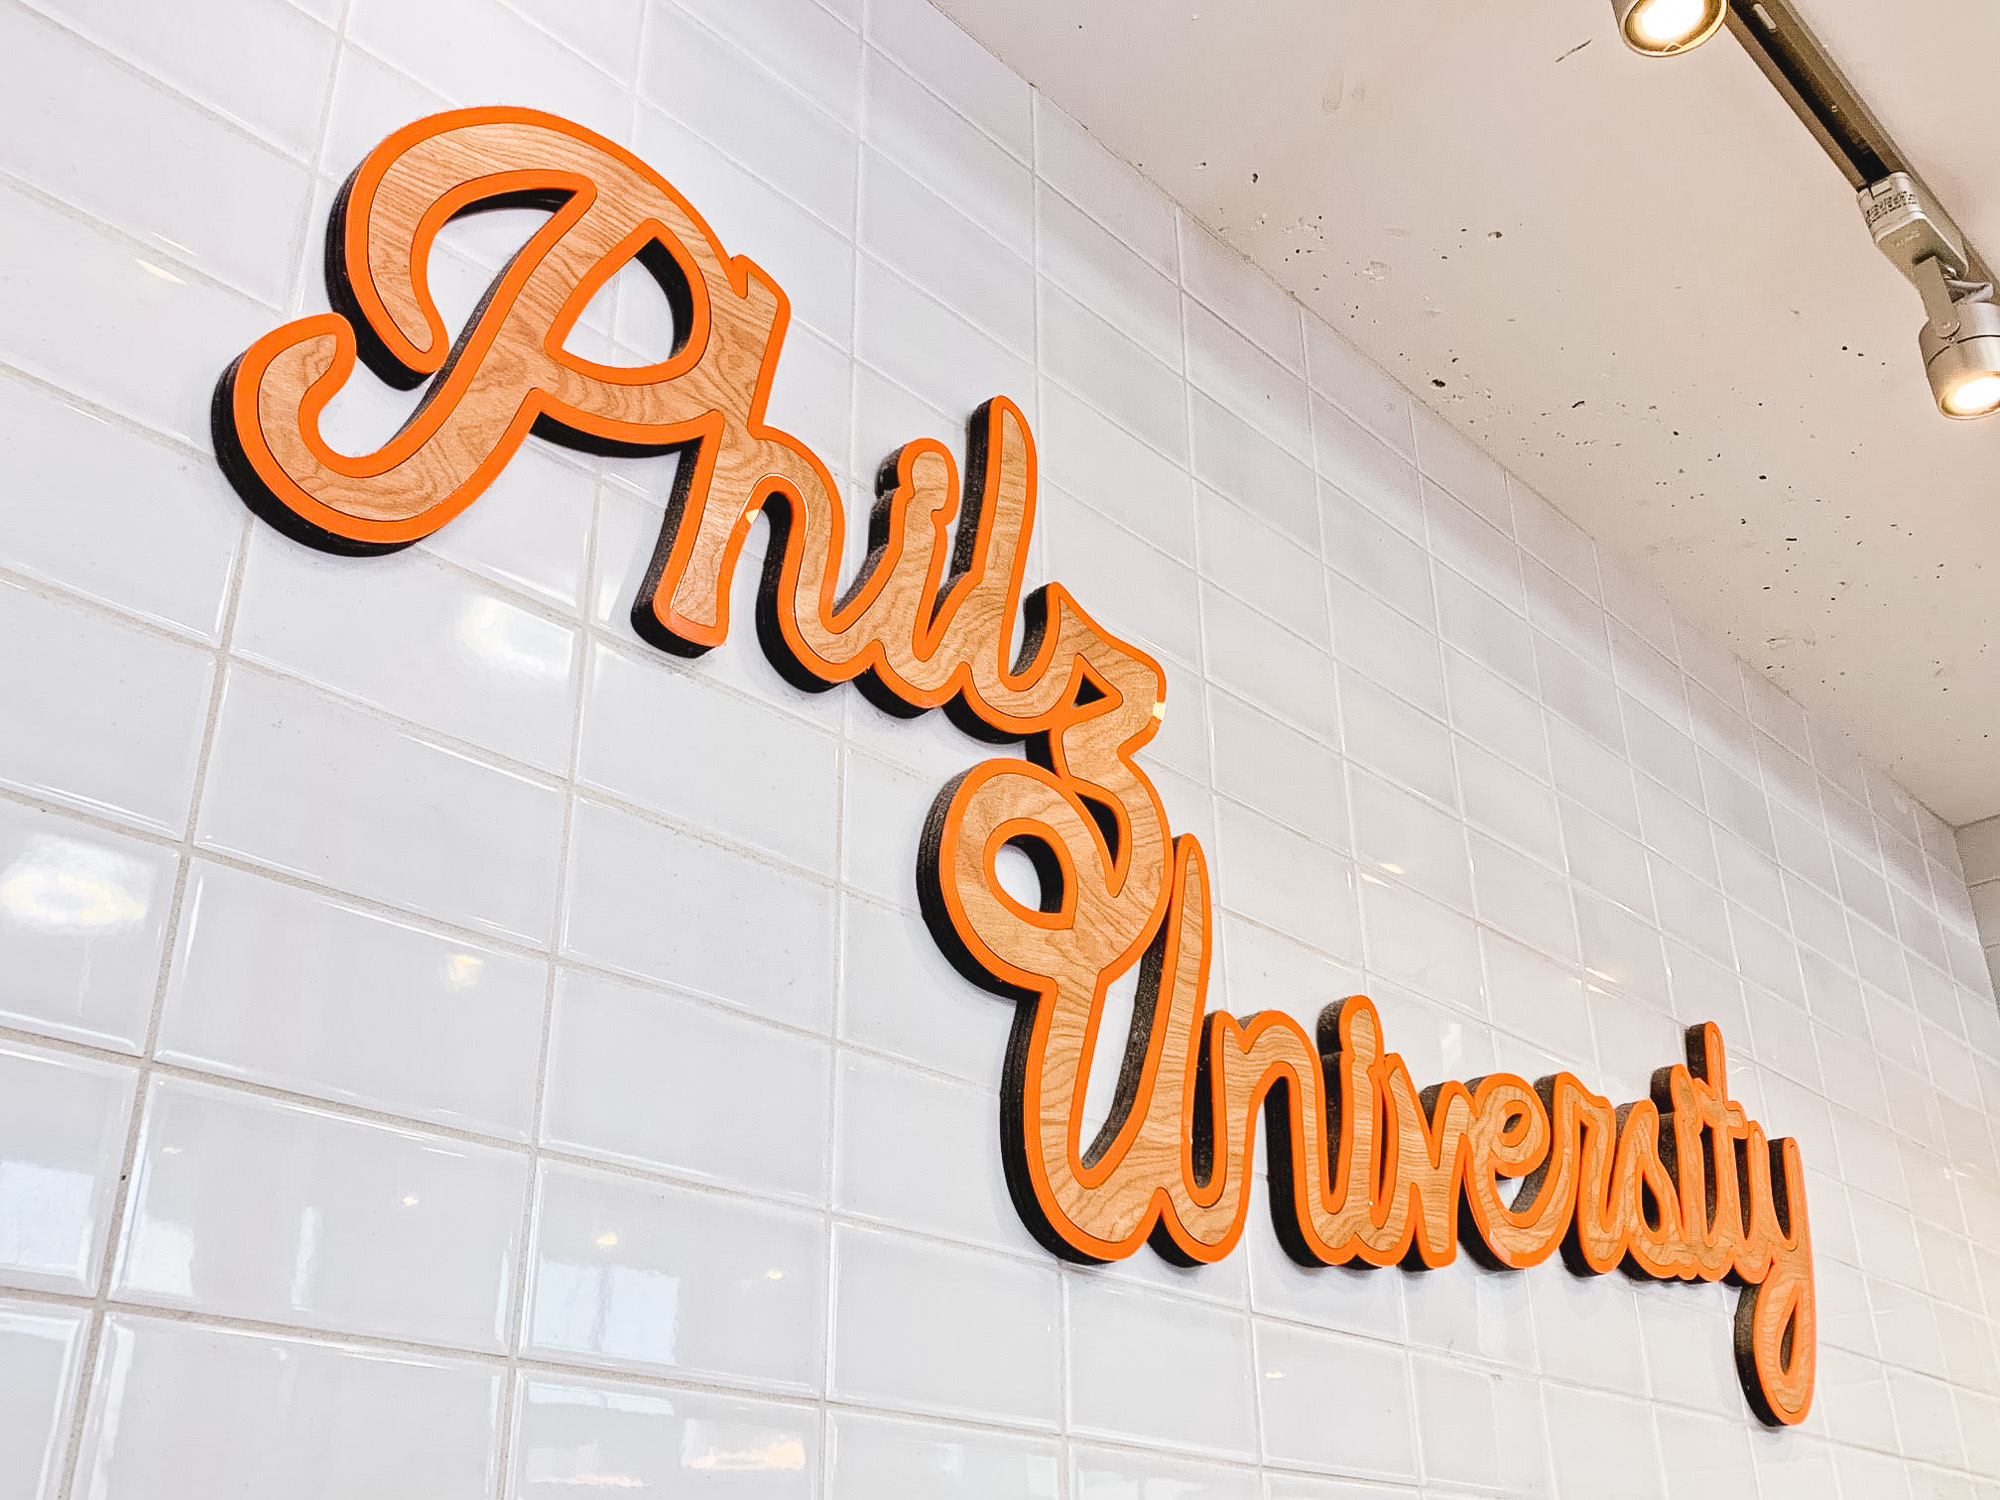 Orange and light wood script sign on white tile wall for Philz University in San Francisco